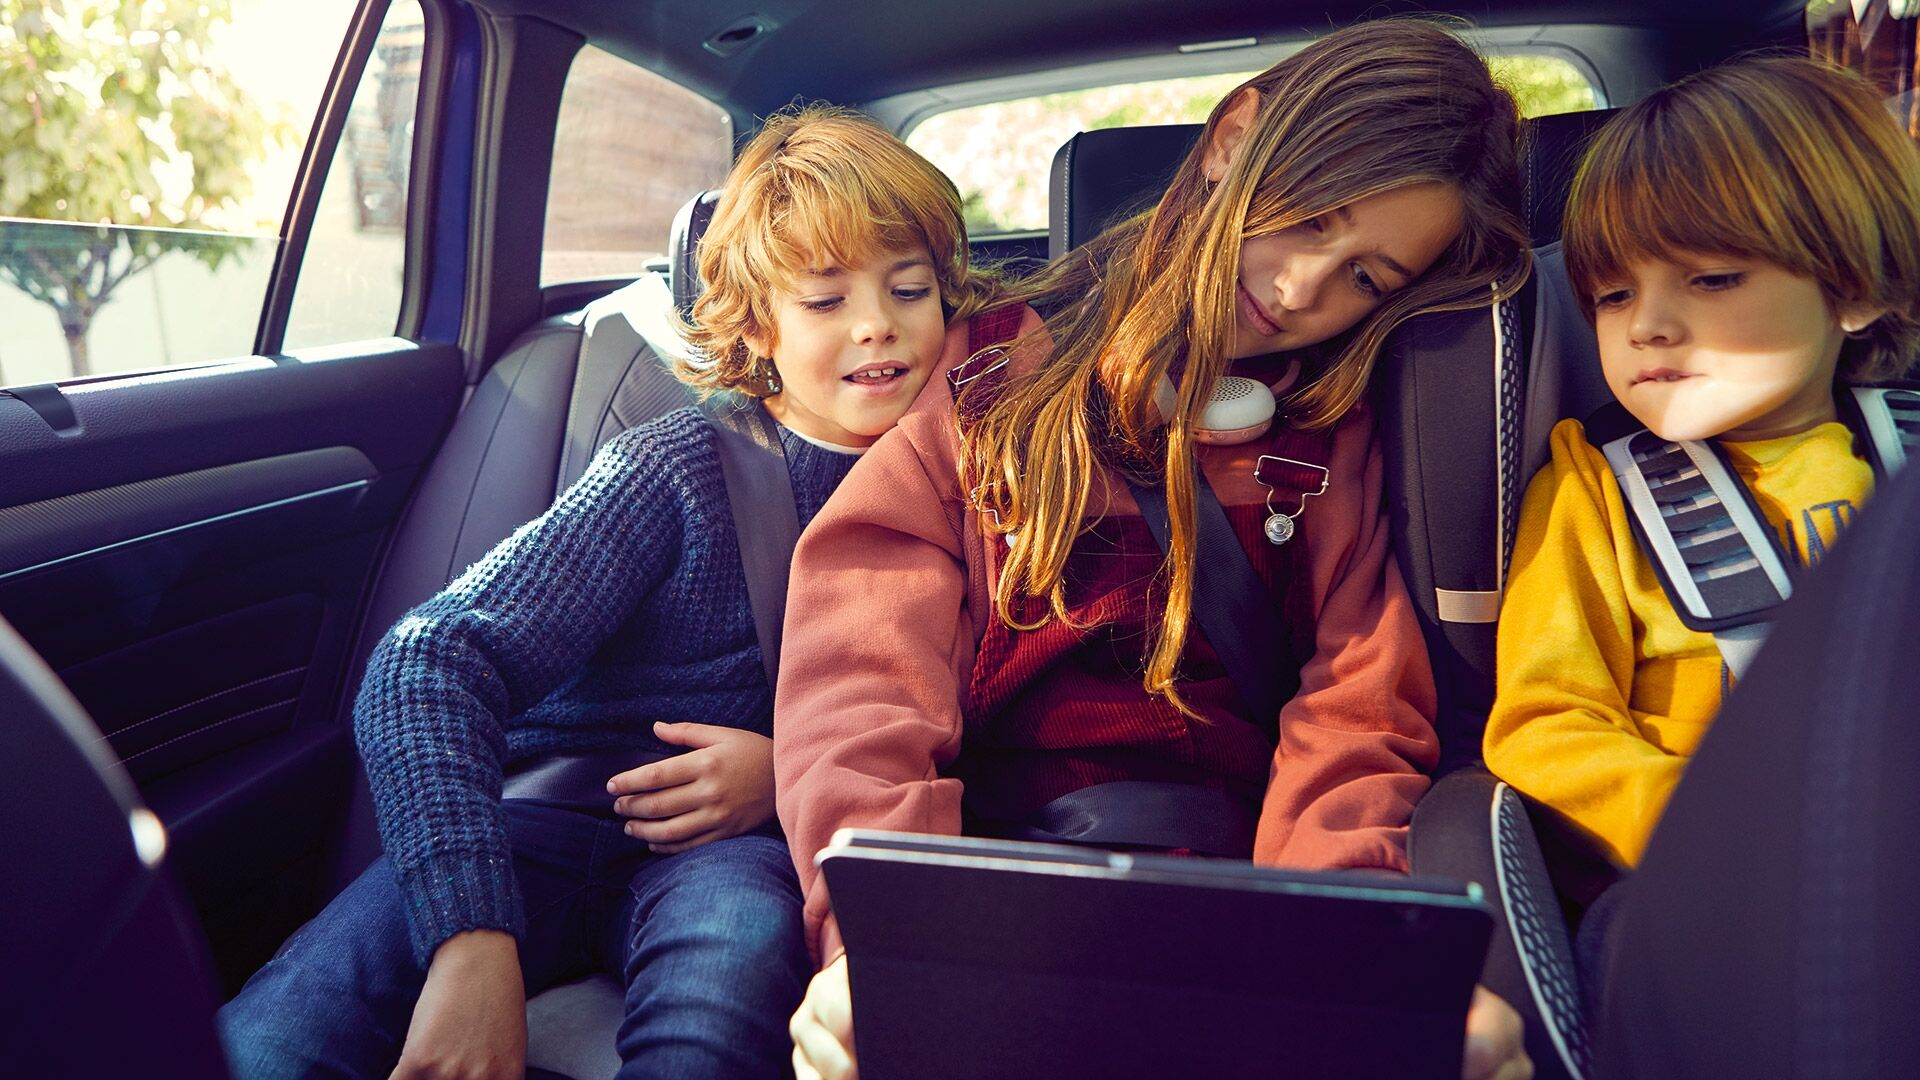 passat interior with kids looking at tablet